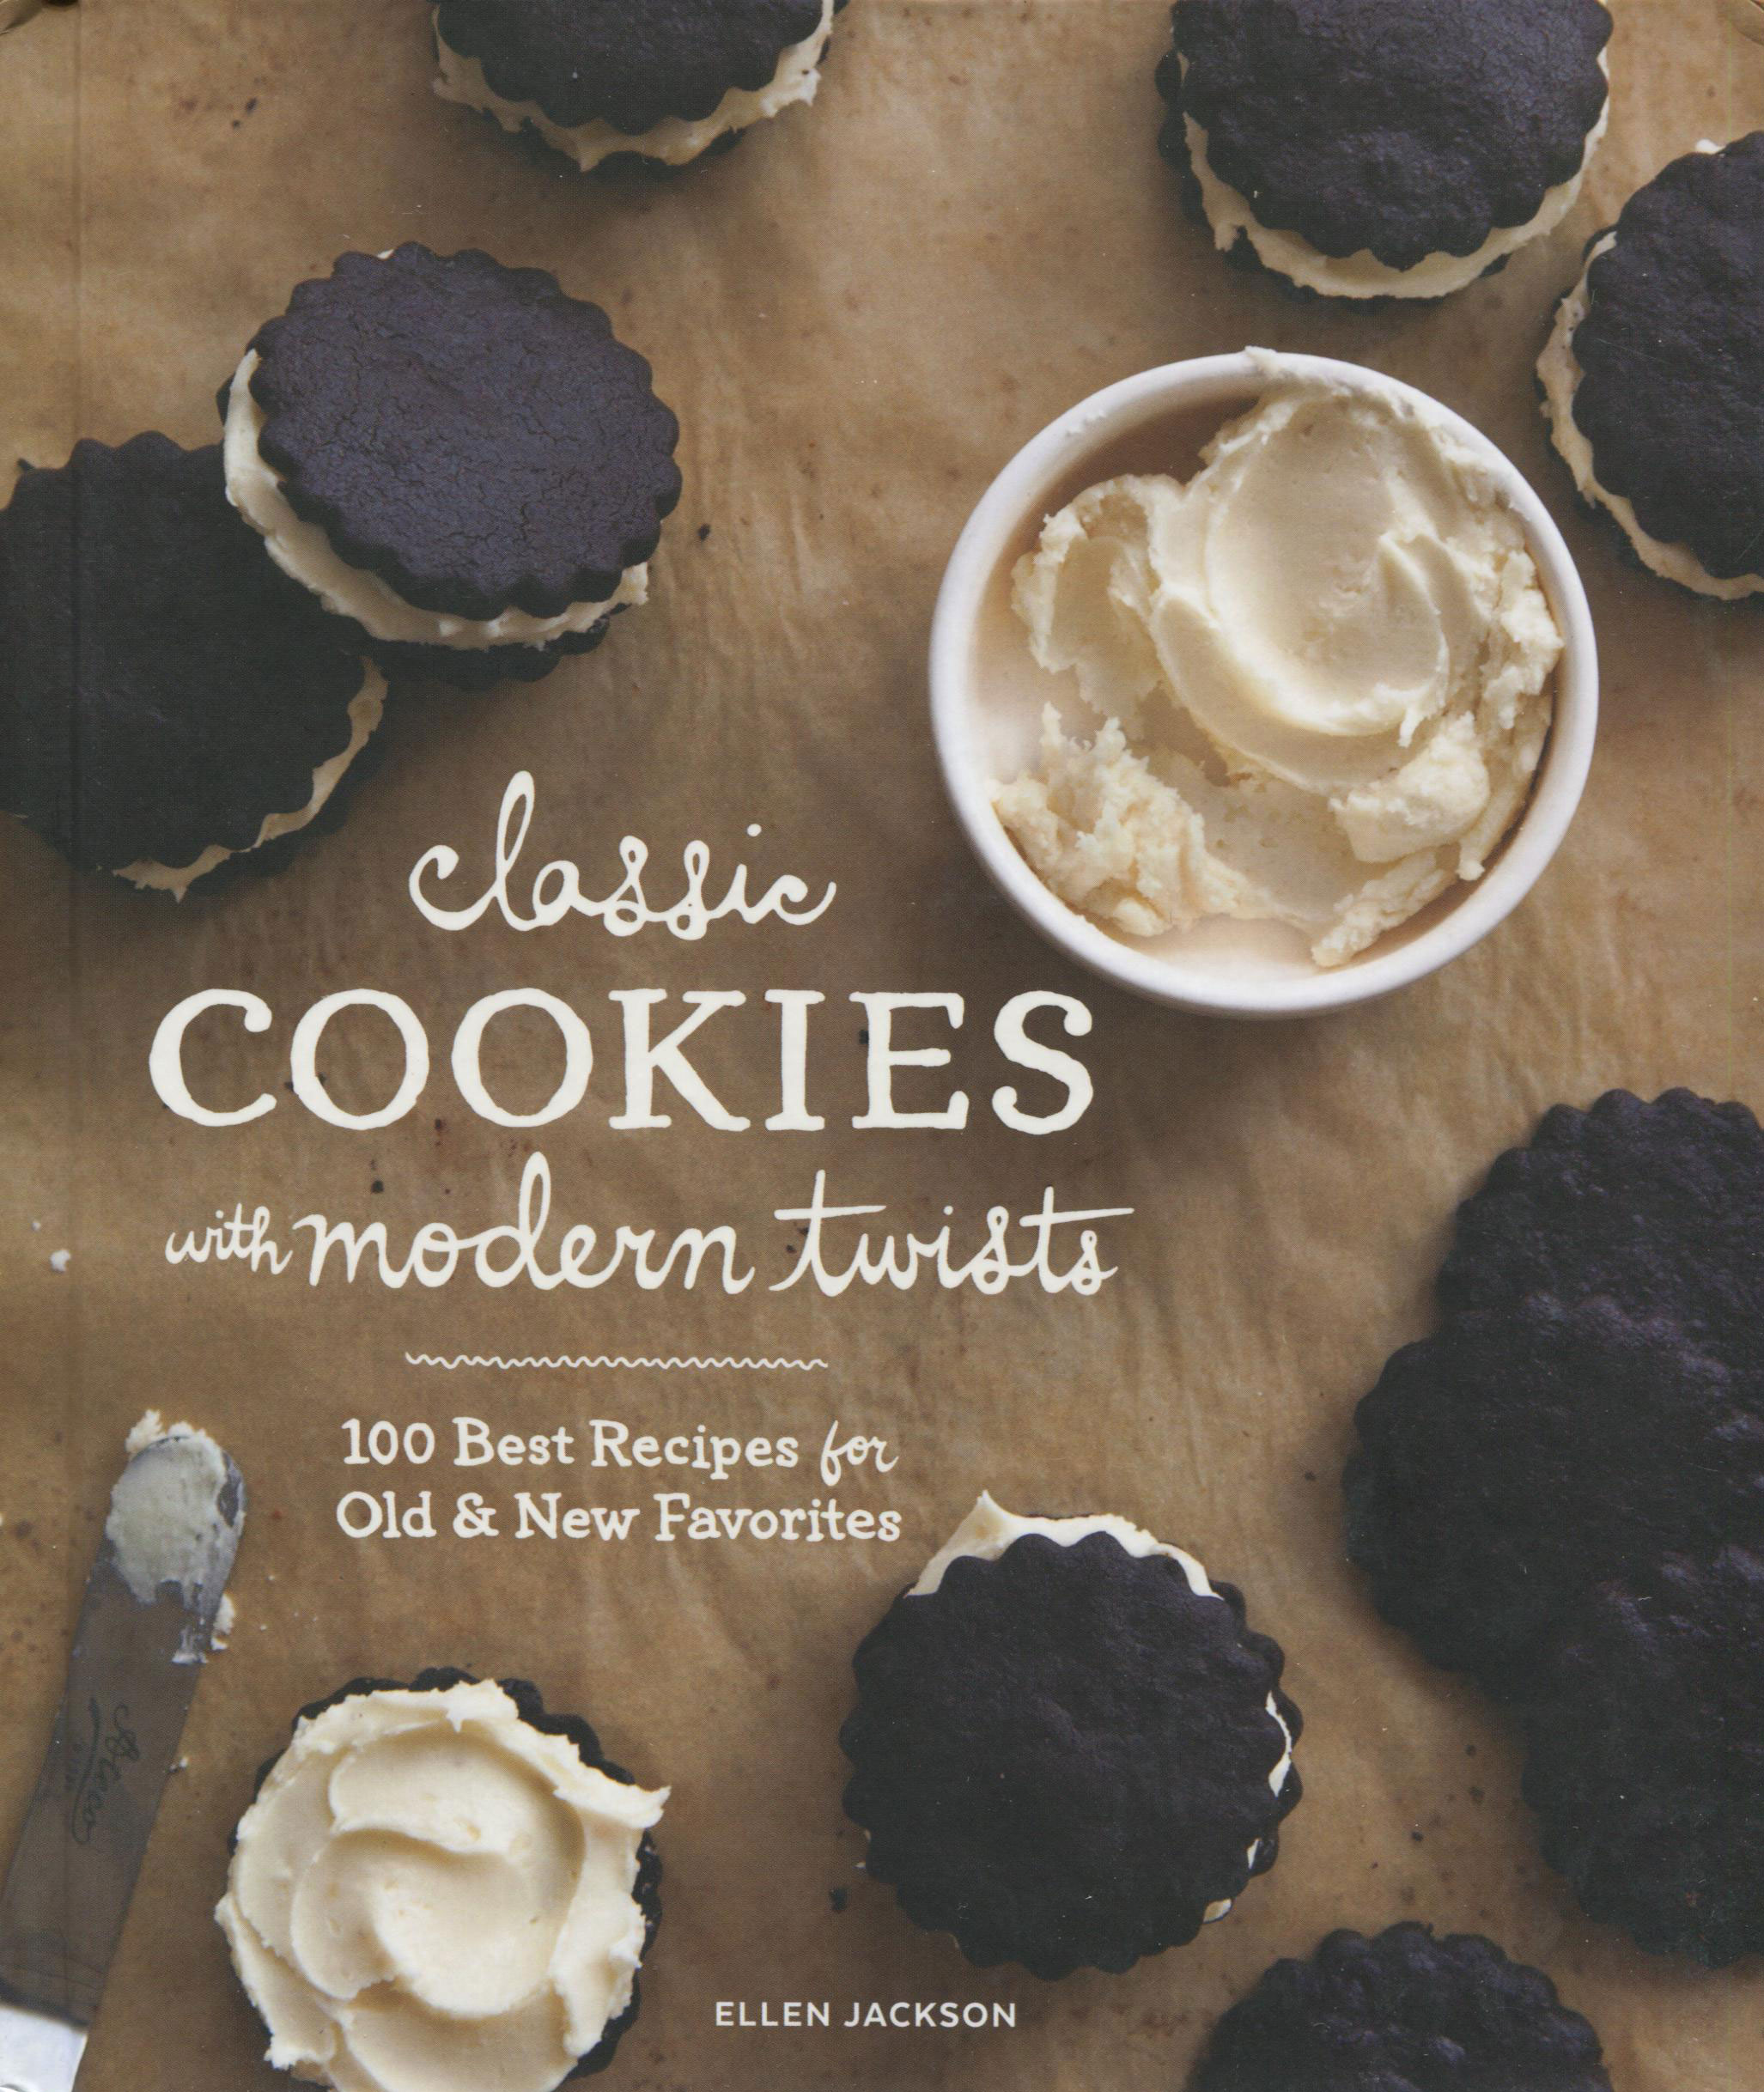 A Summer Cookbook for You While We Are in Yellowstone: Classic Cookies with a Modern Twist